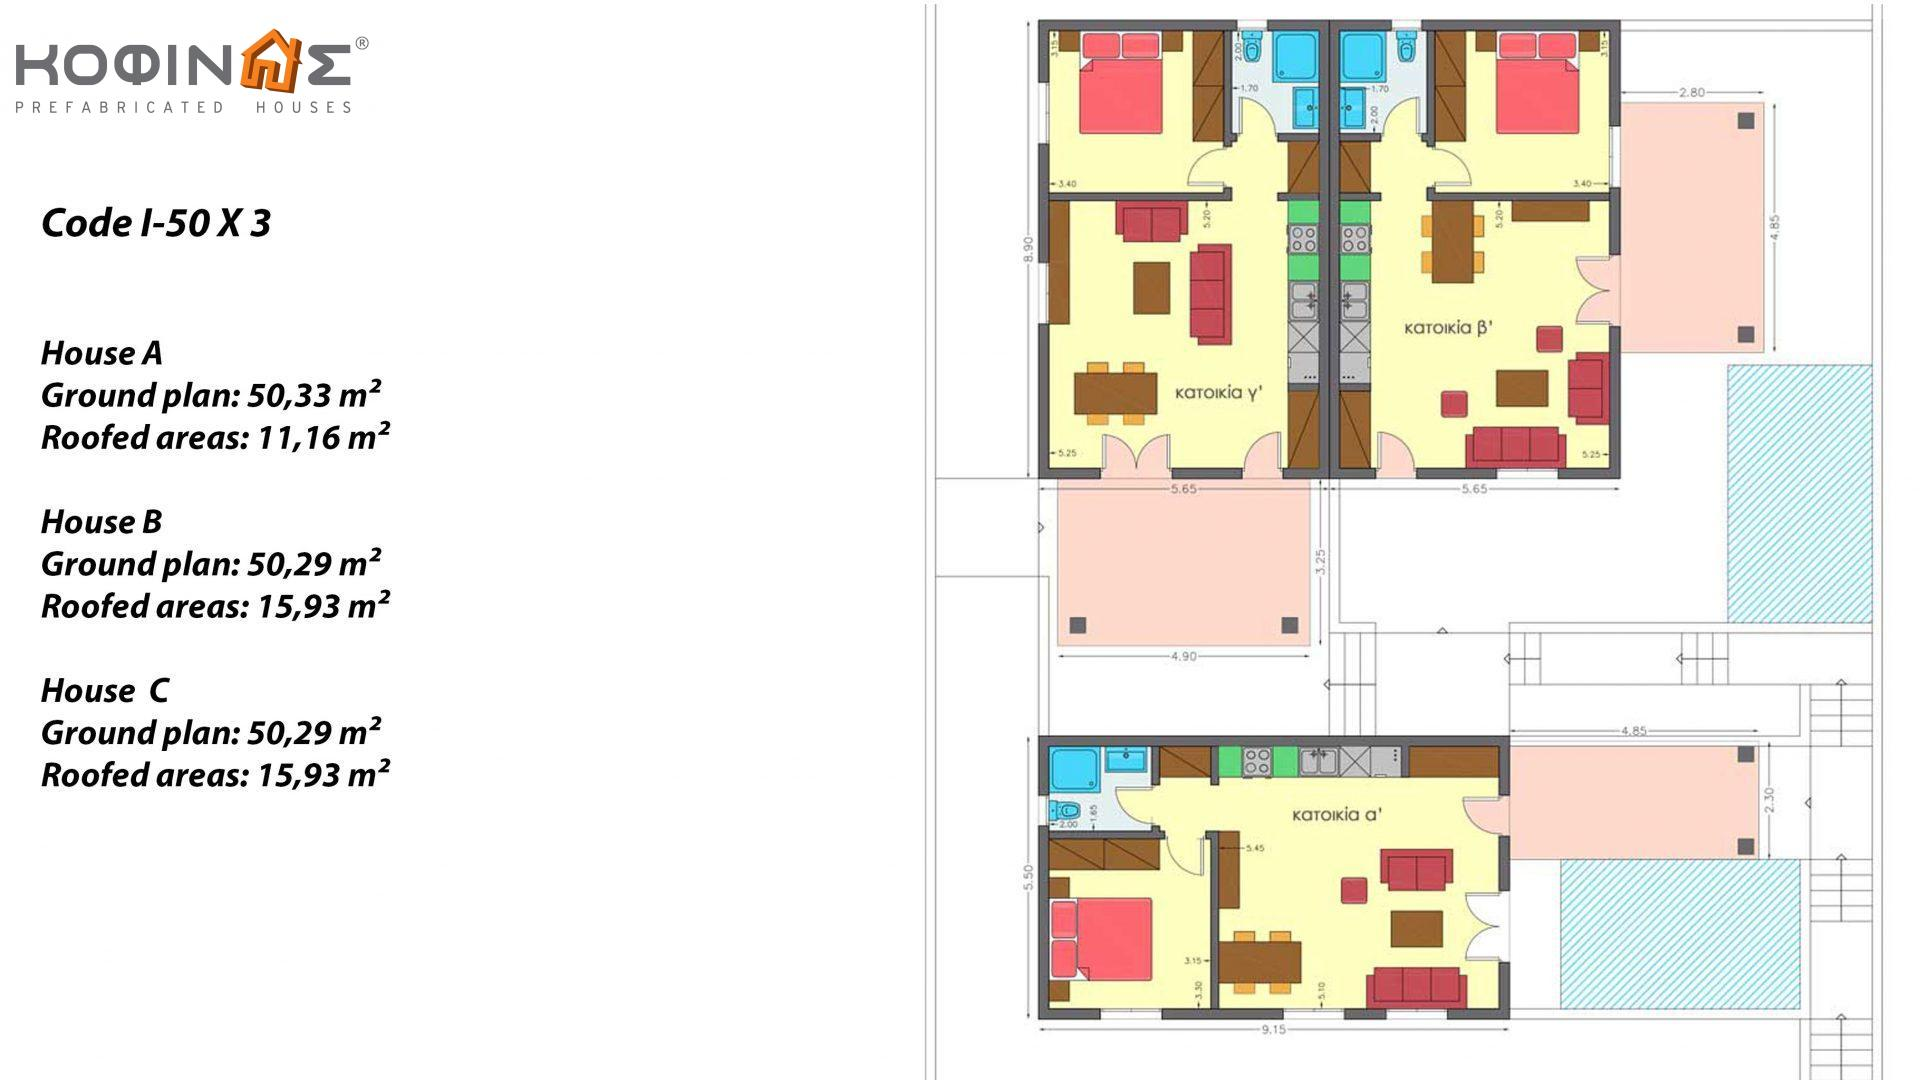 1-story house I-50, total surface of 50.30 m², roofed areas 11.16 m² for house A,15.93 m² for house B and 15.93 m² for house C